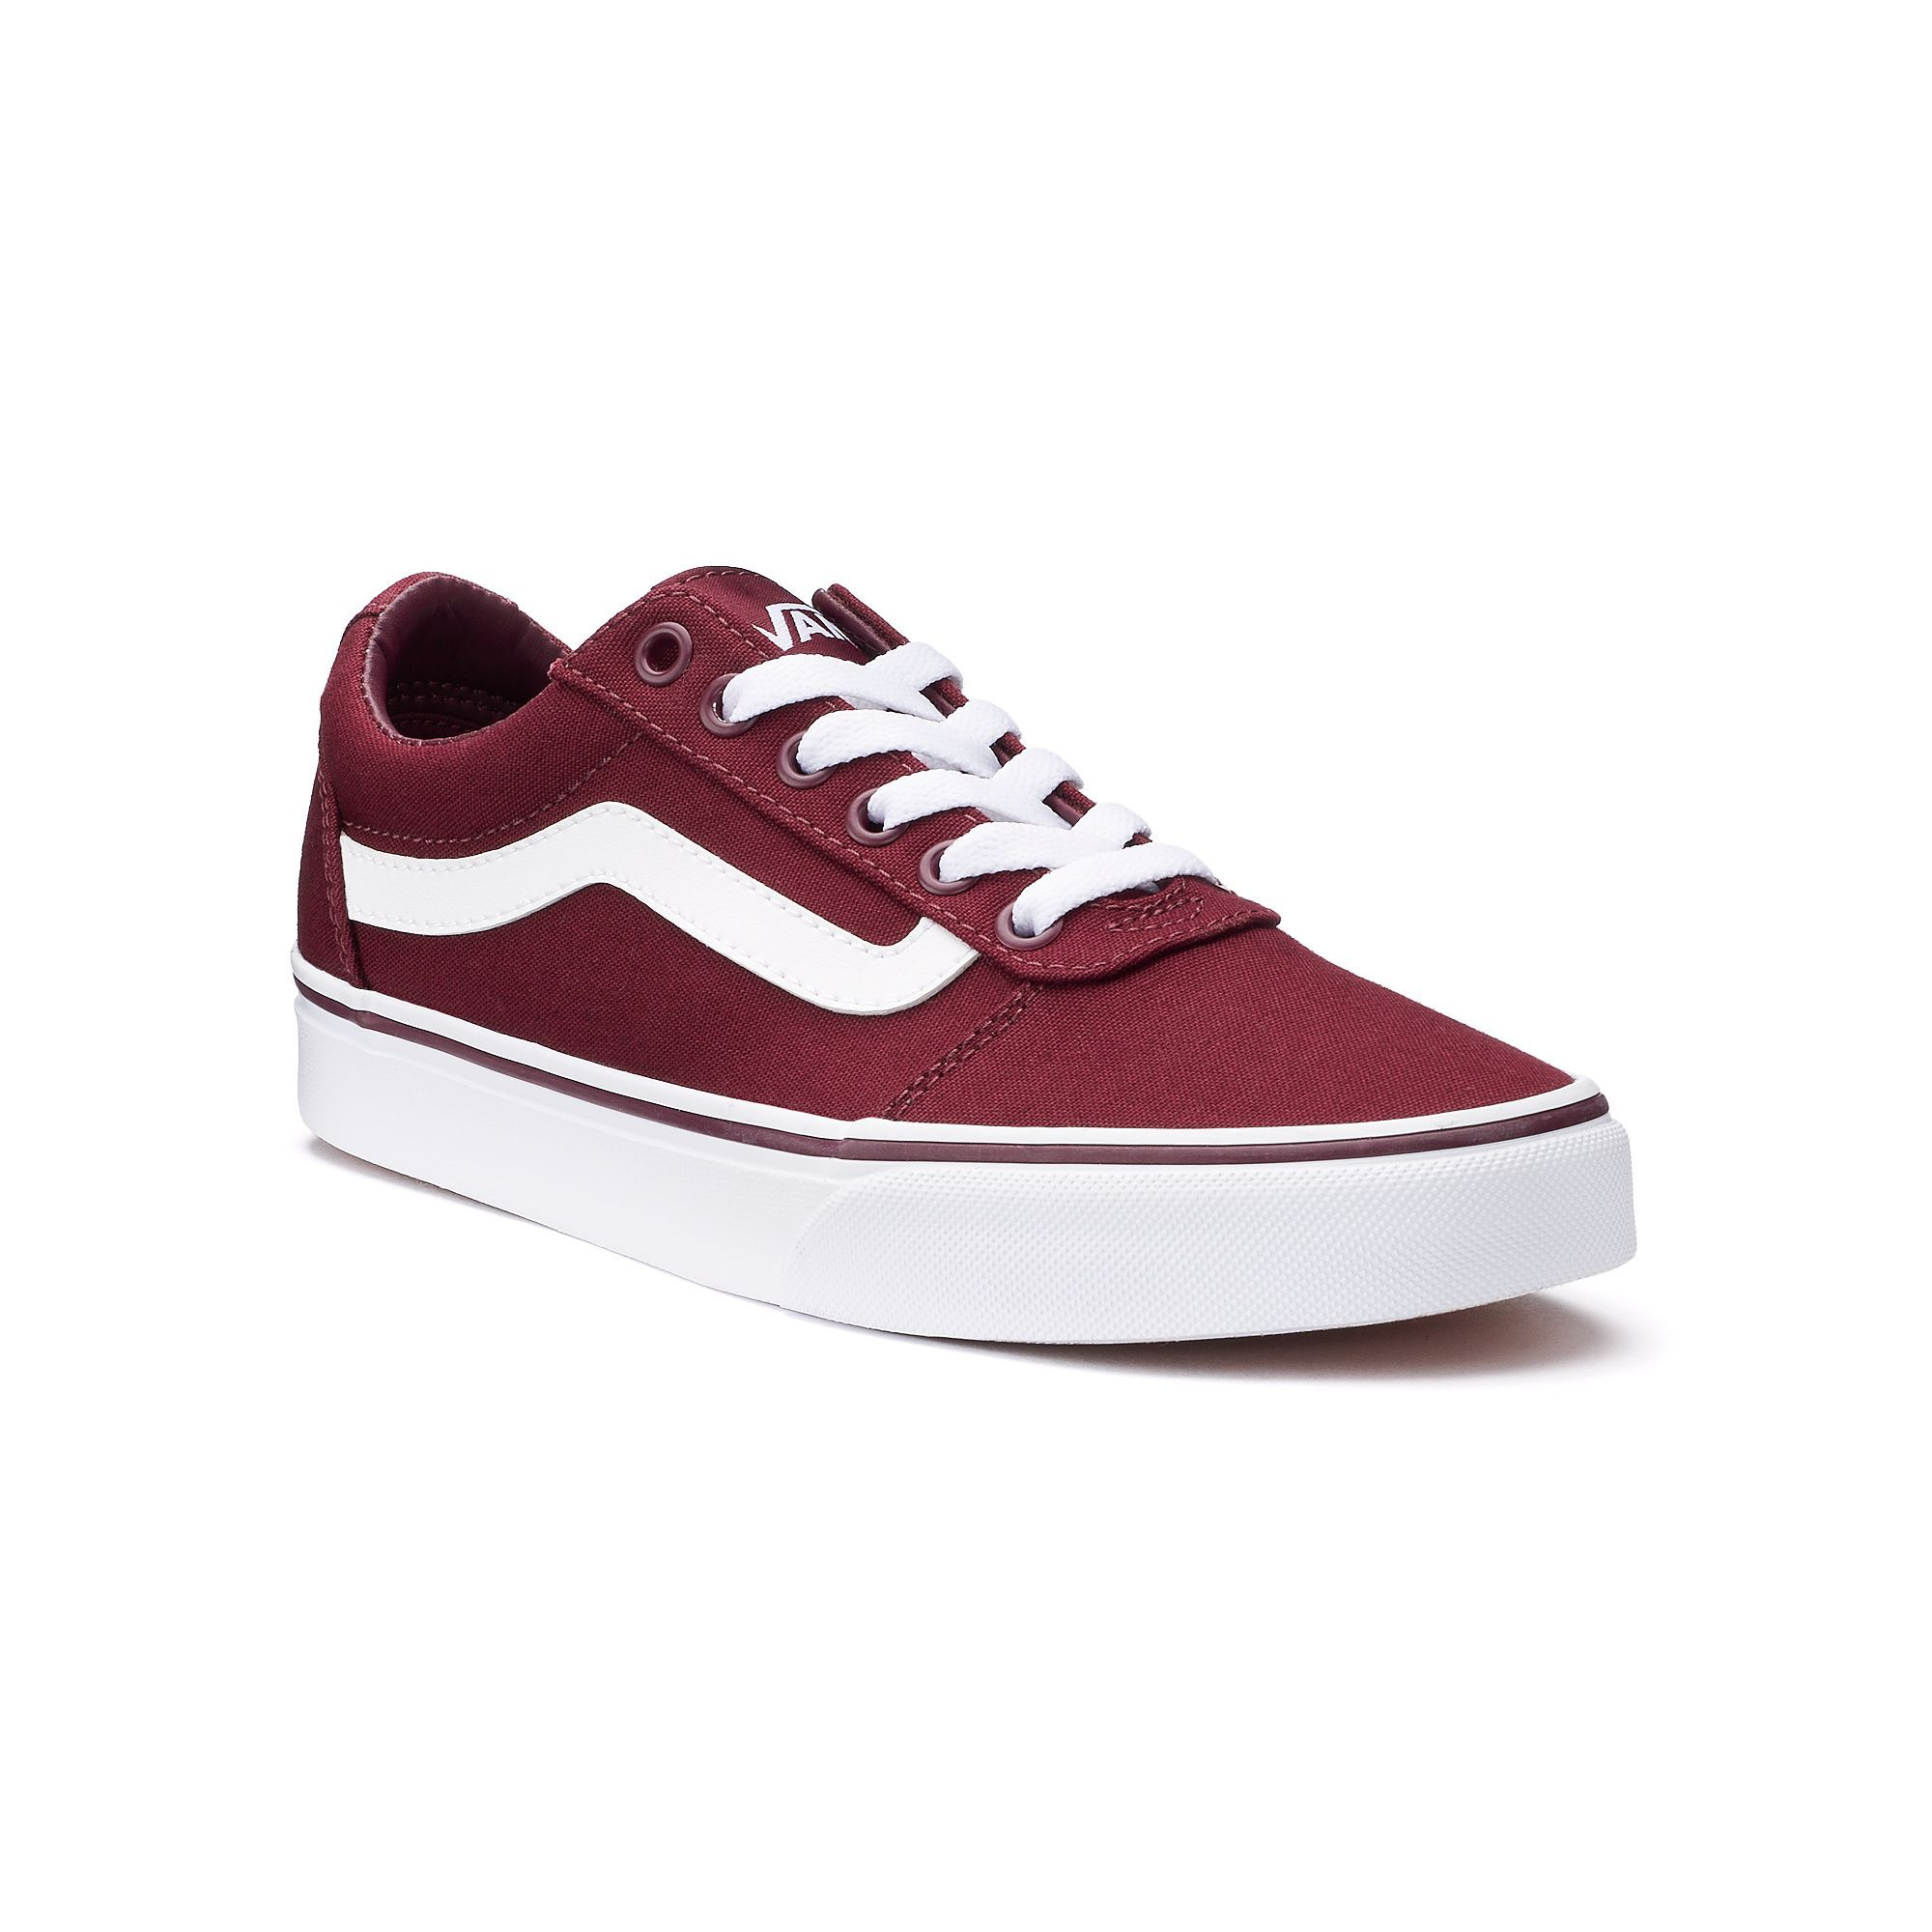 ba74085ddbf Vans Ward Women s Canvas Skate Shoes